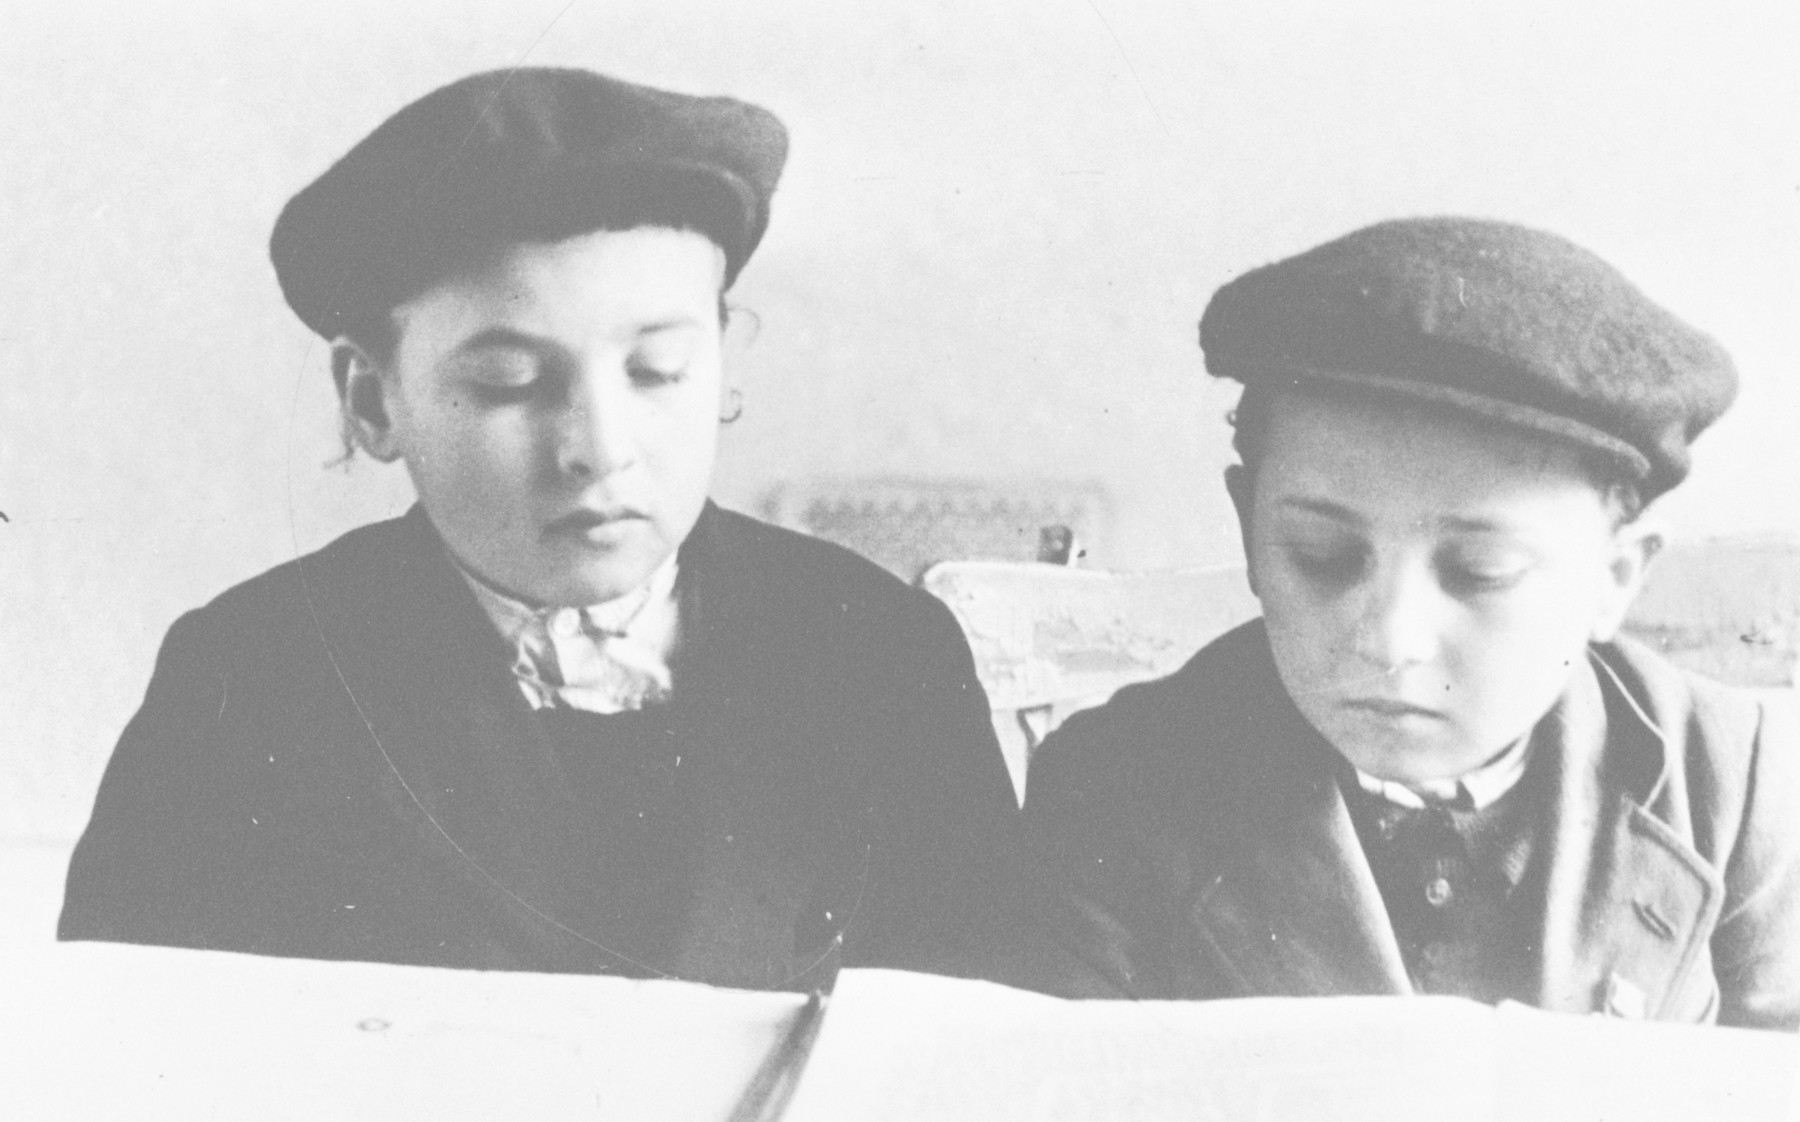 Two young boys study a religious text in Bad Nauheim, a children's home run by the Vaad Hatzala.